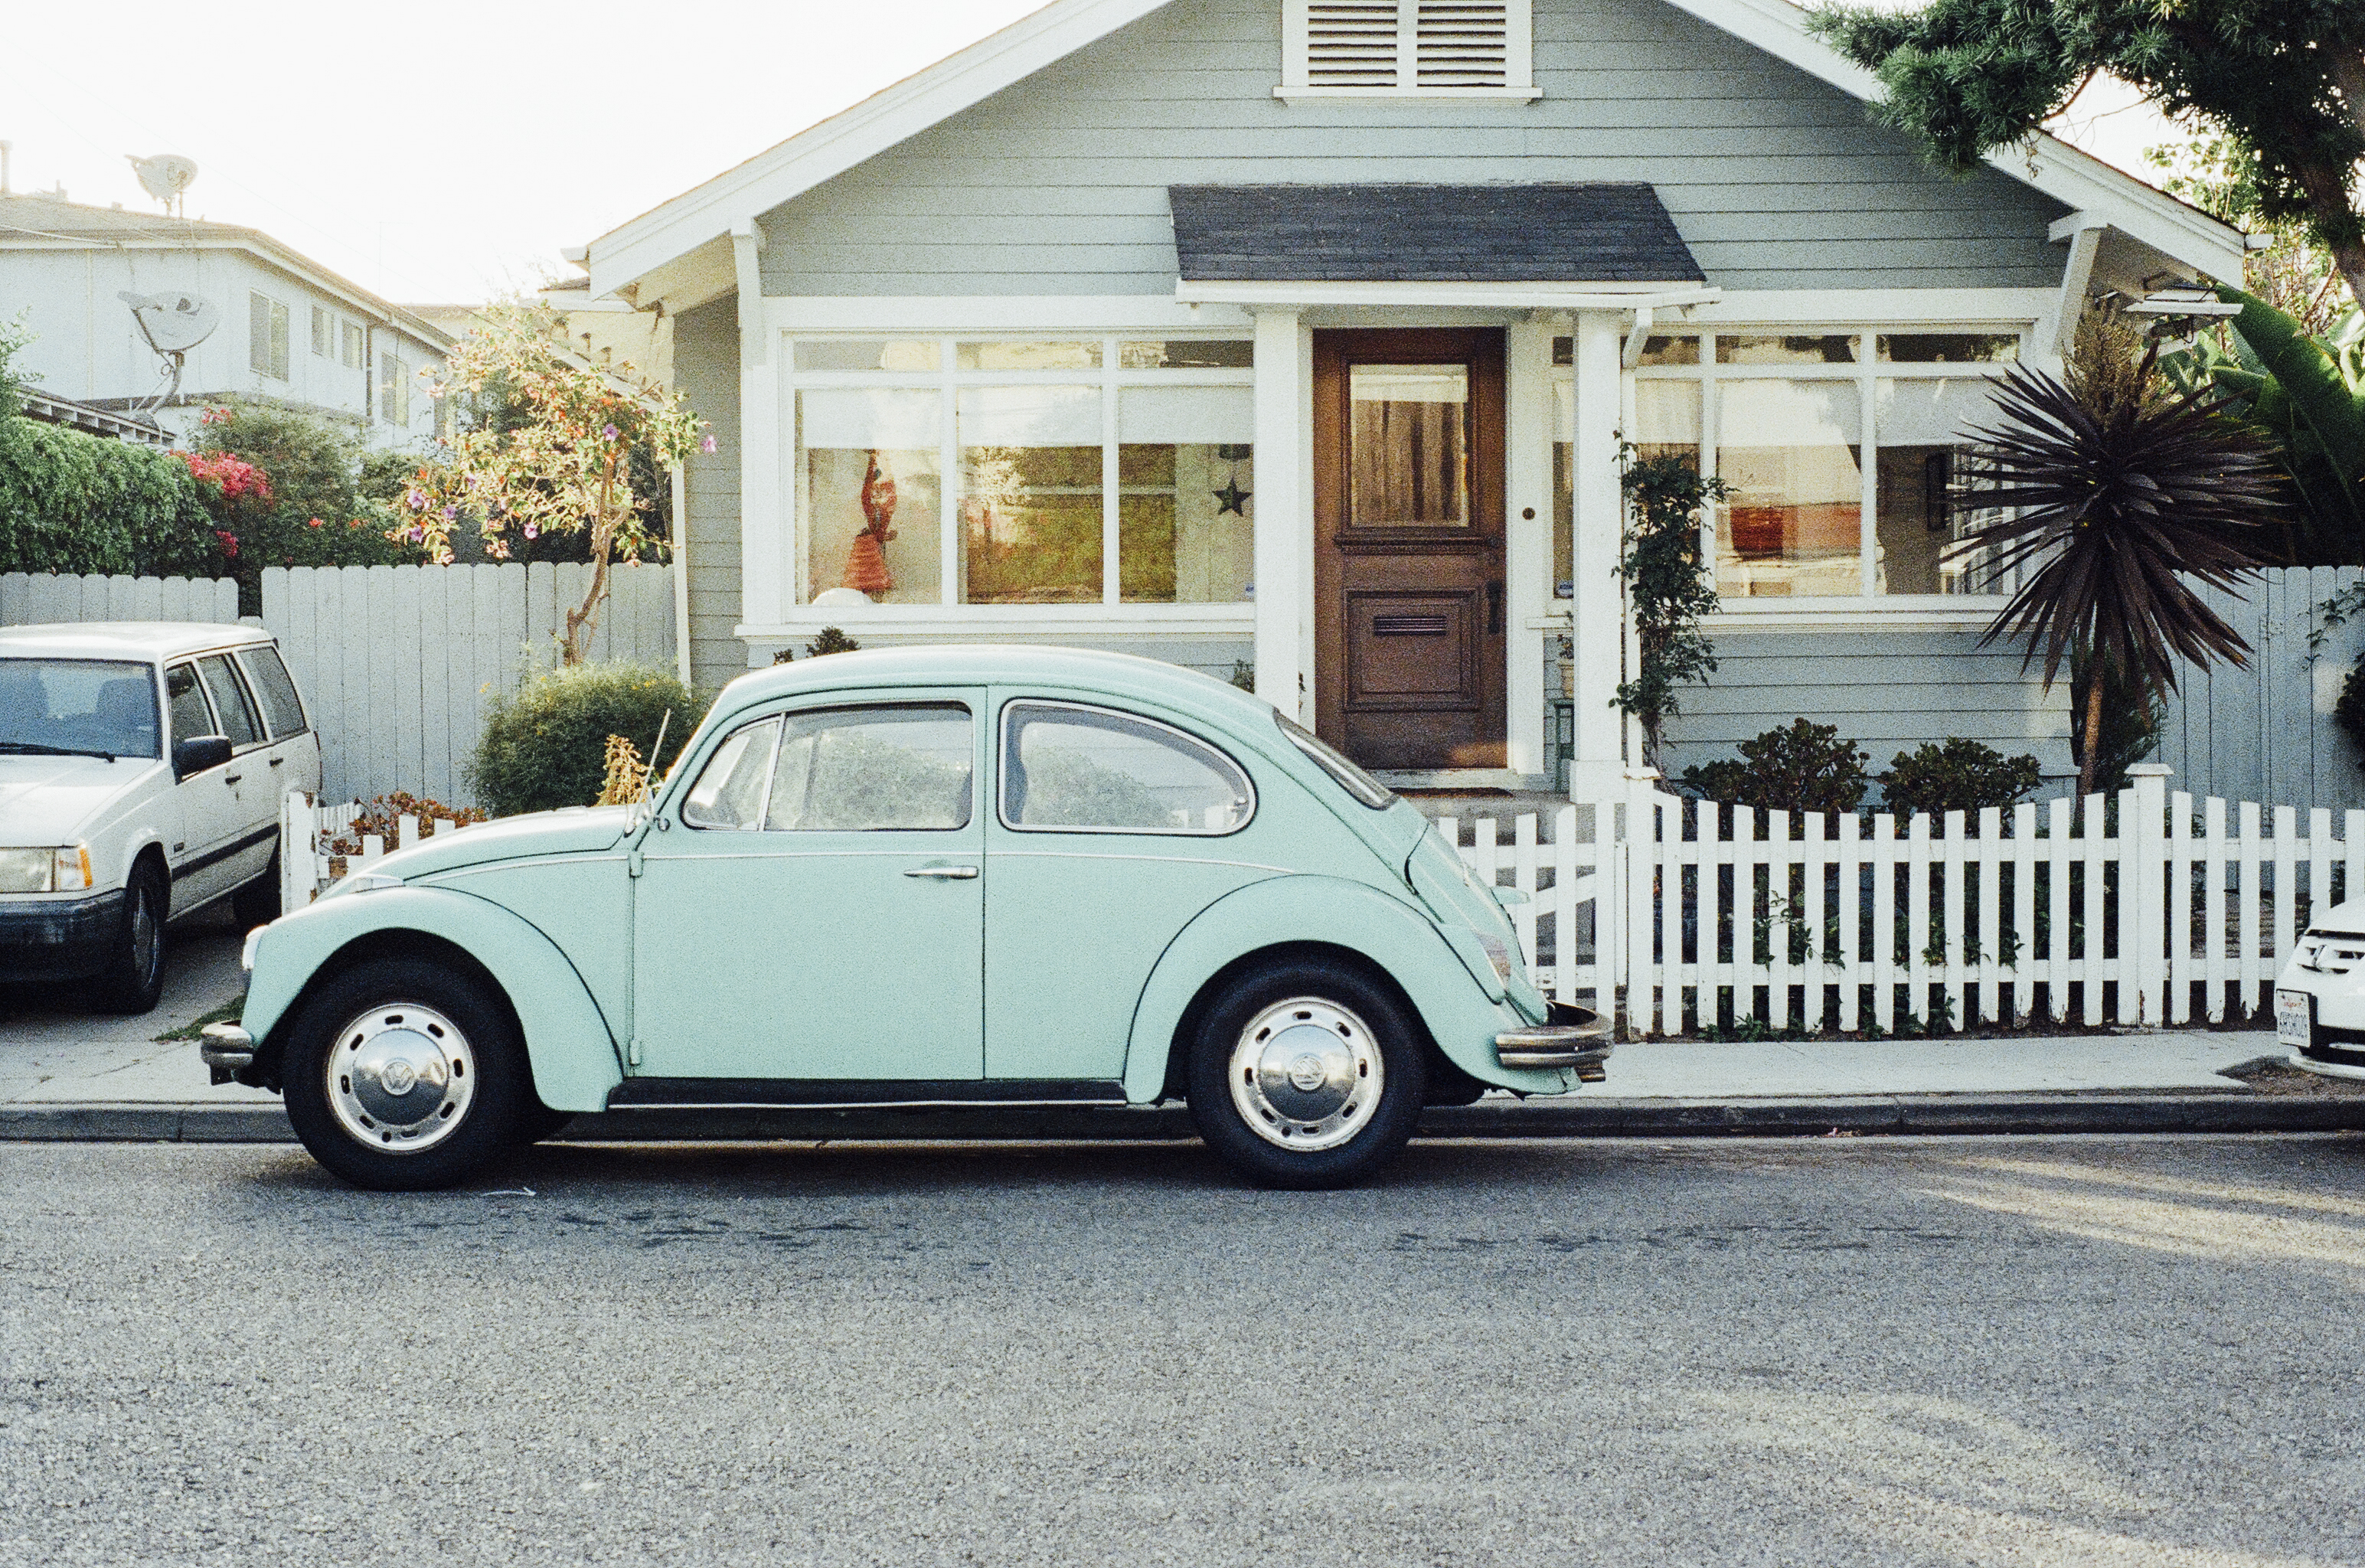 3 Considerations When Choosing Exterior Paint Colors